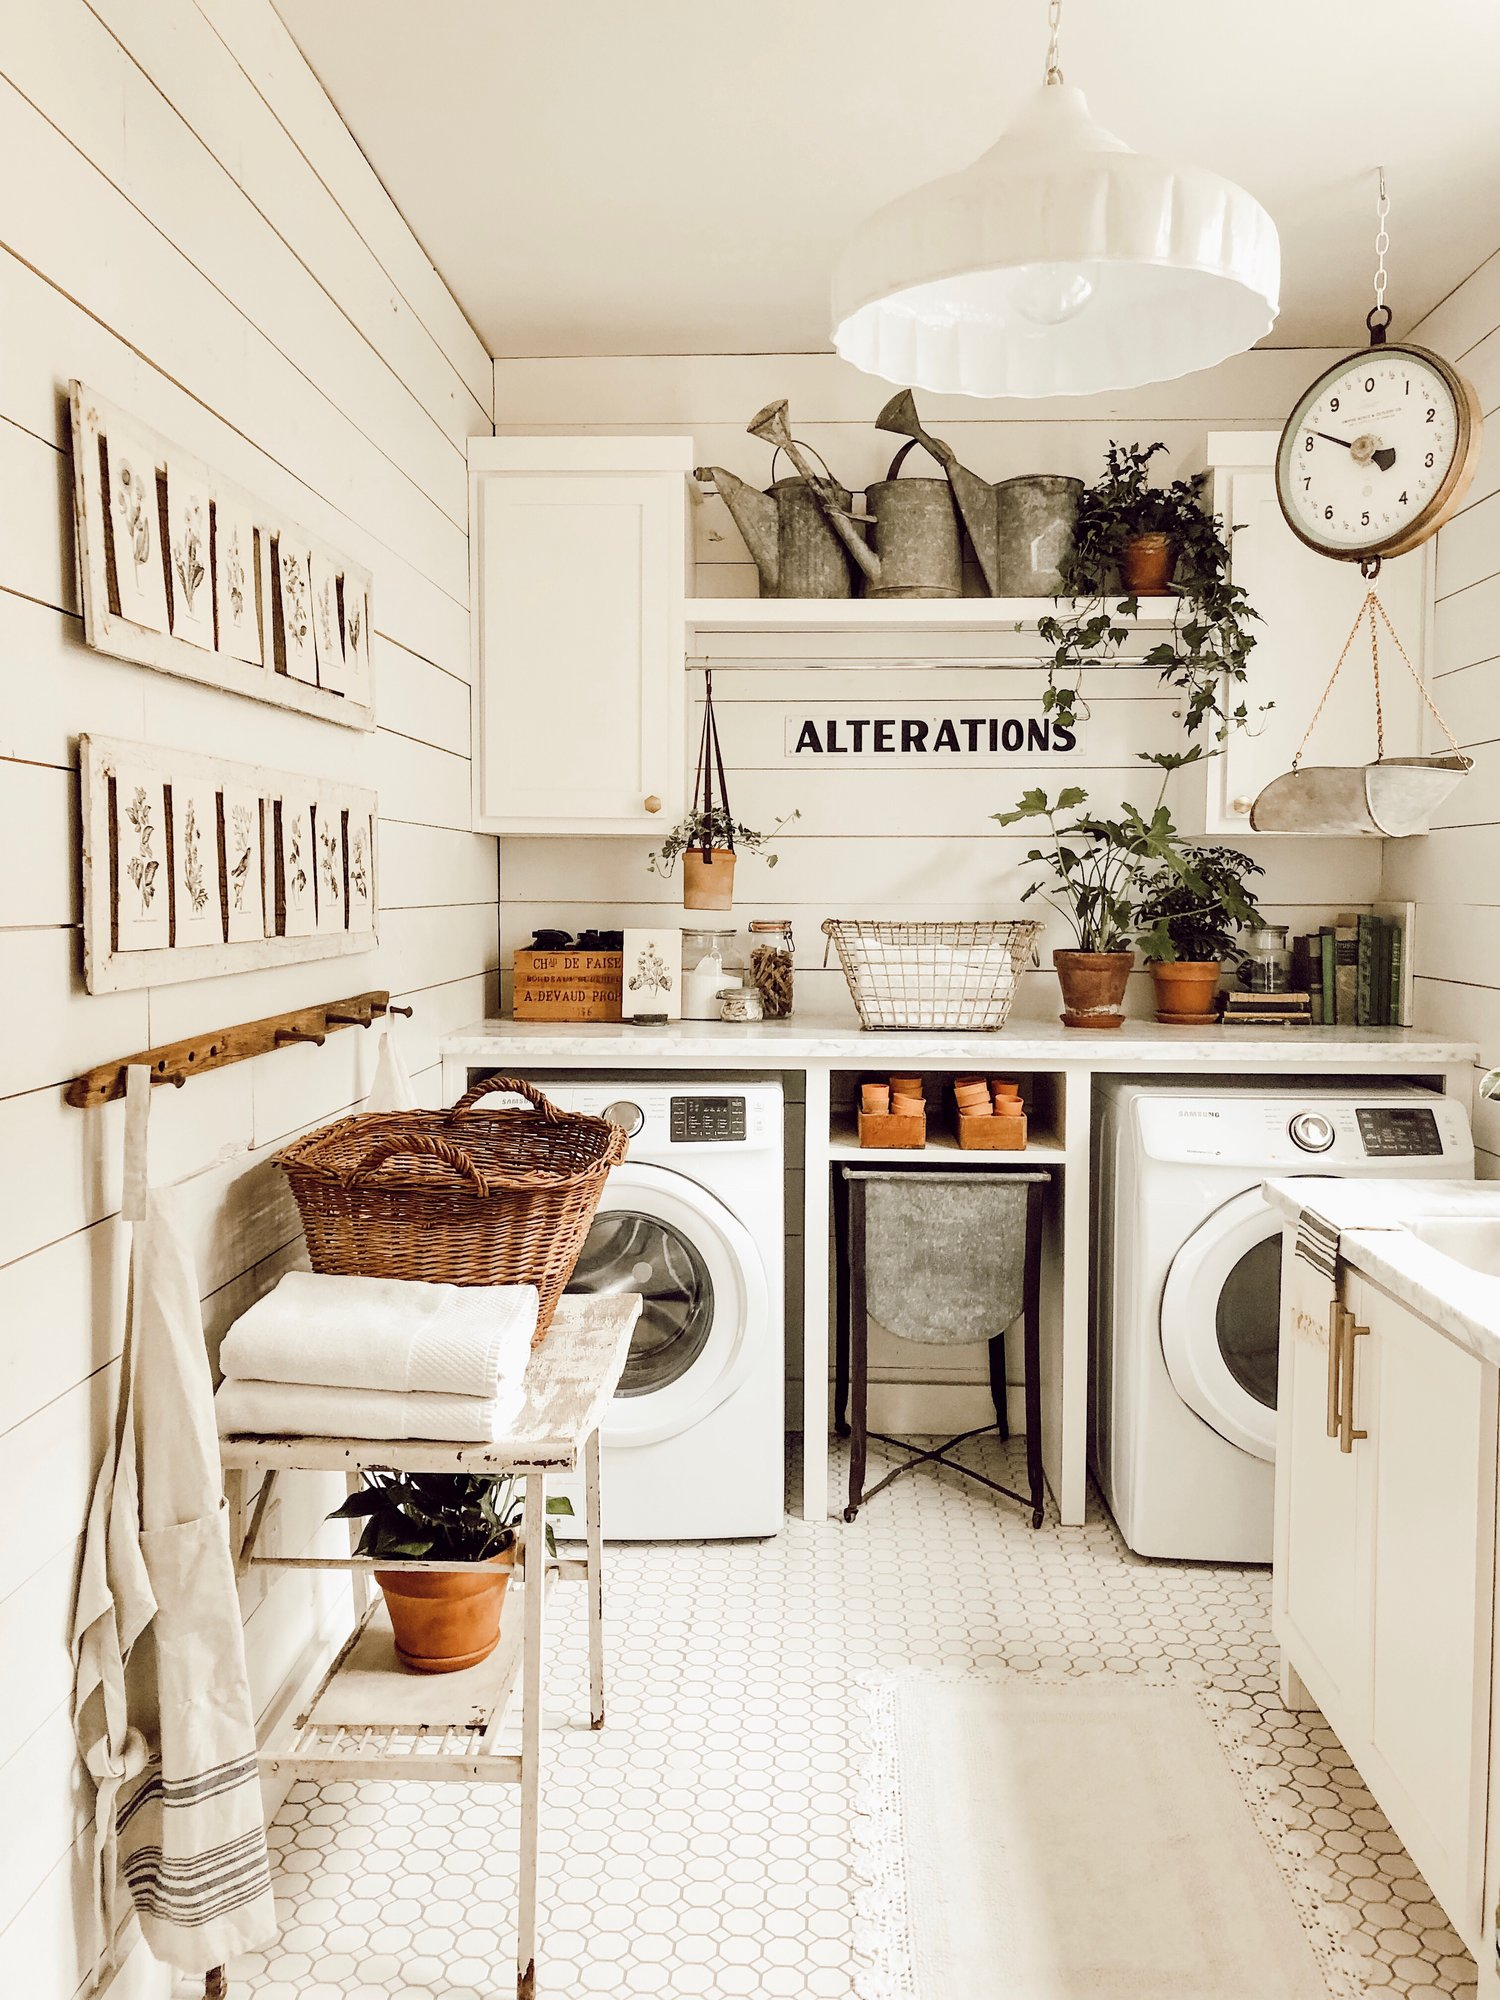 White laundry room with vintage decorations, plants and hanging weighing scale